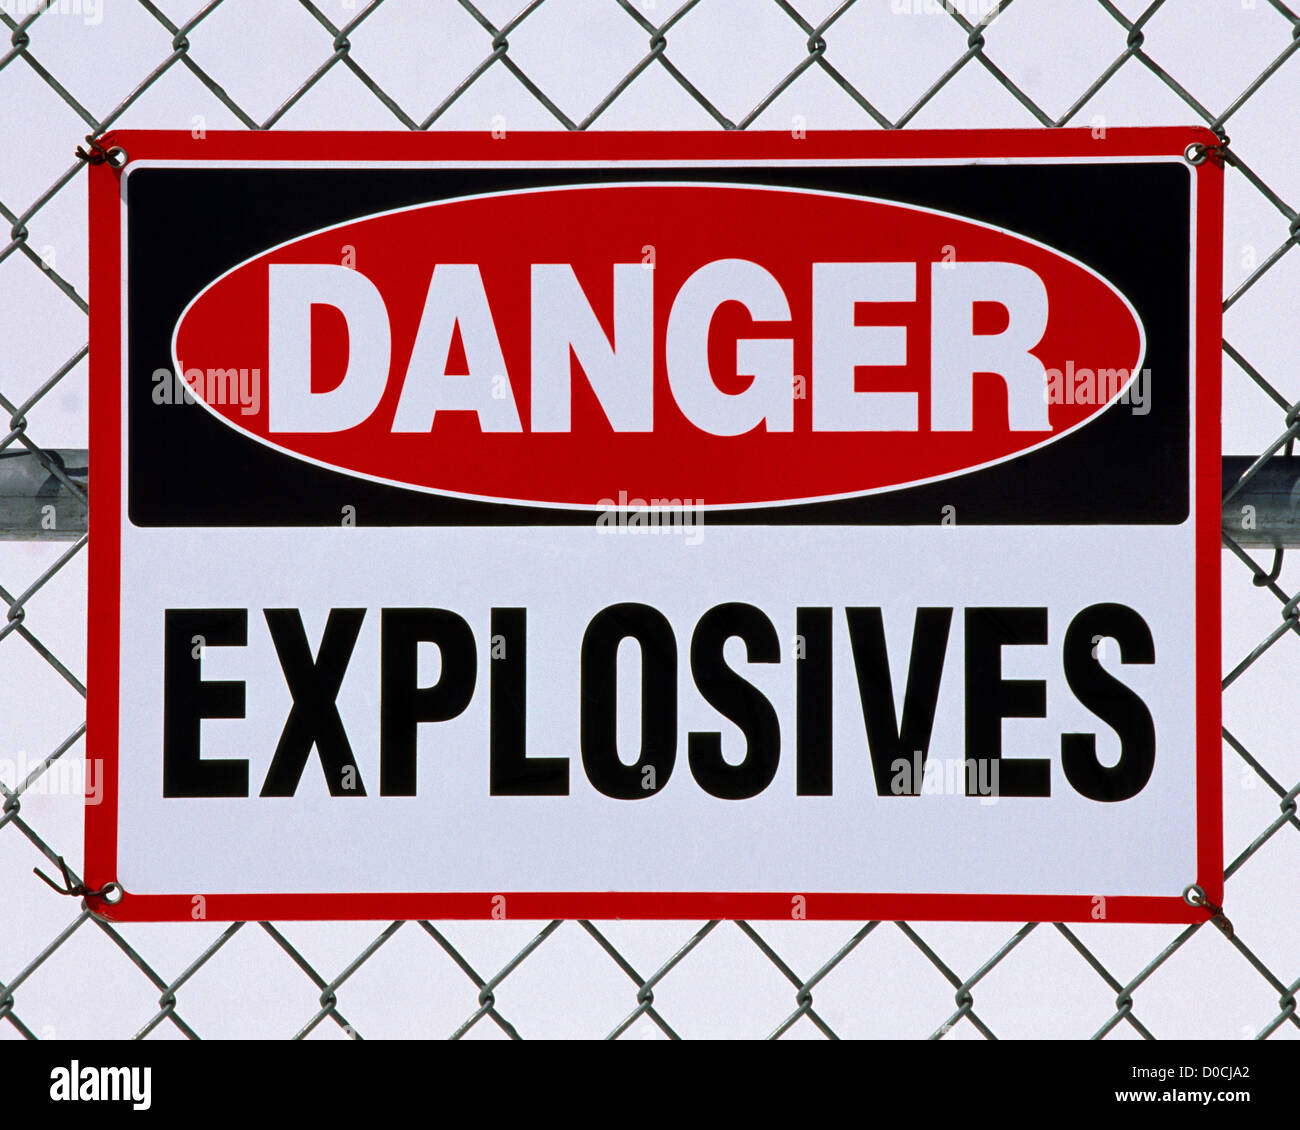 Danger Sign Indicating Explosives Lie Within the Fenced Boundary - Stock Image